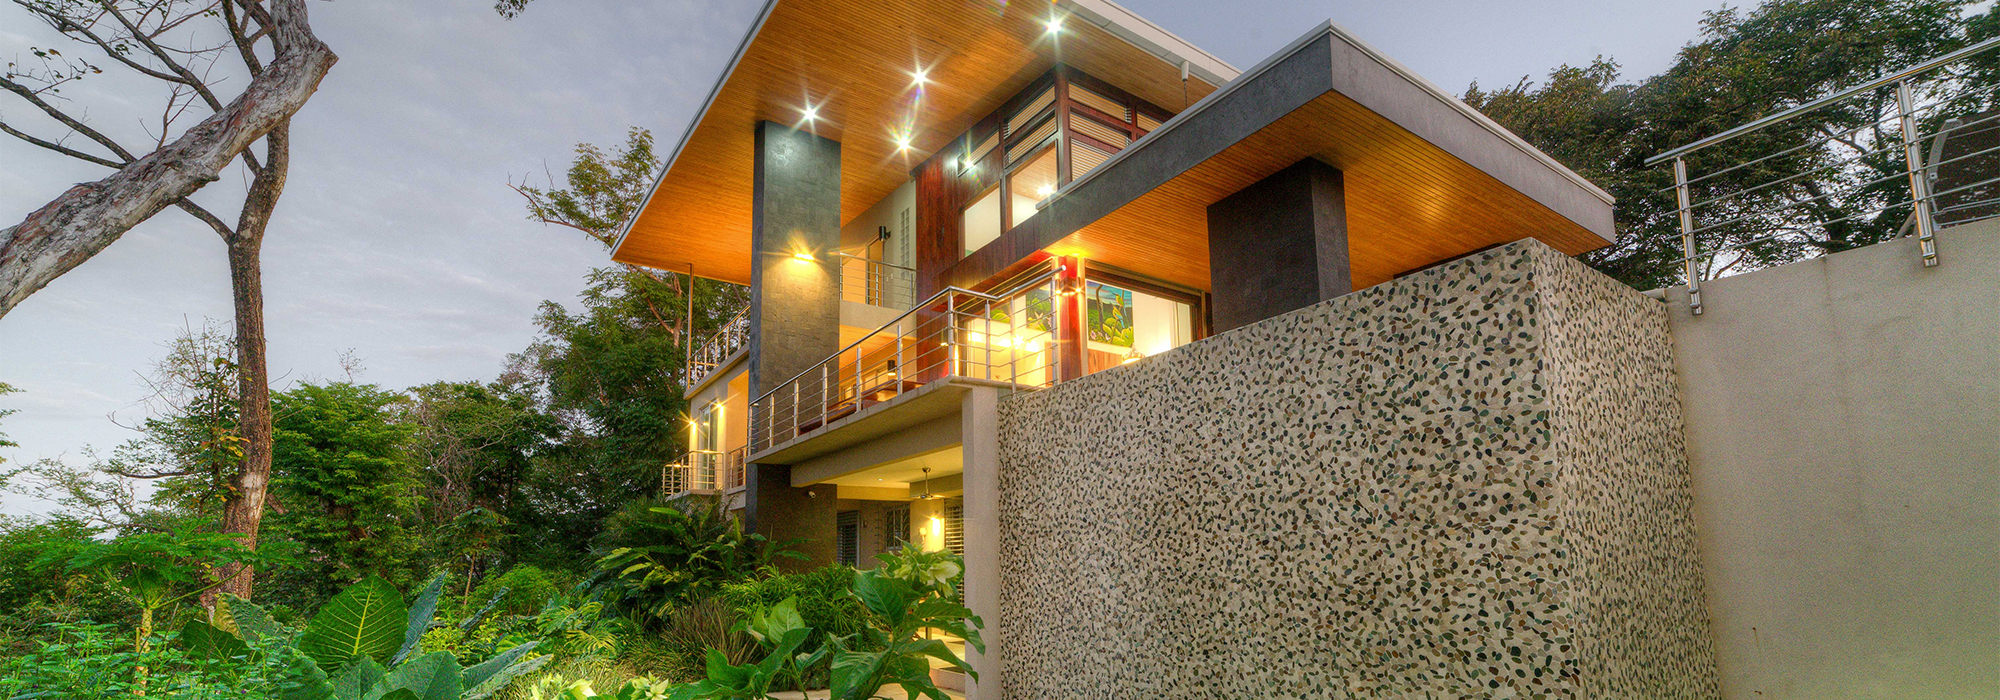 Costa Rica Dream House